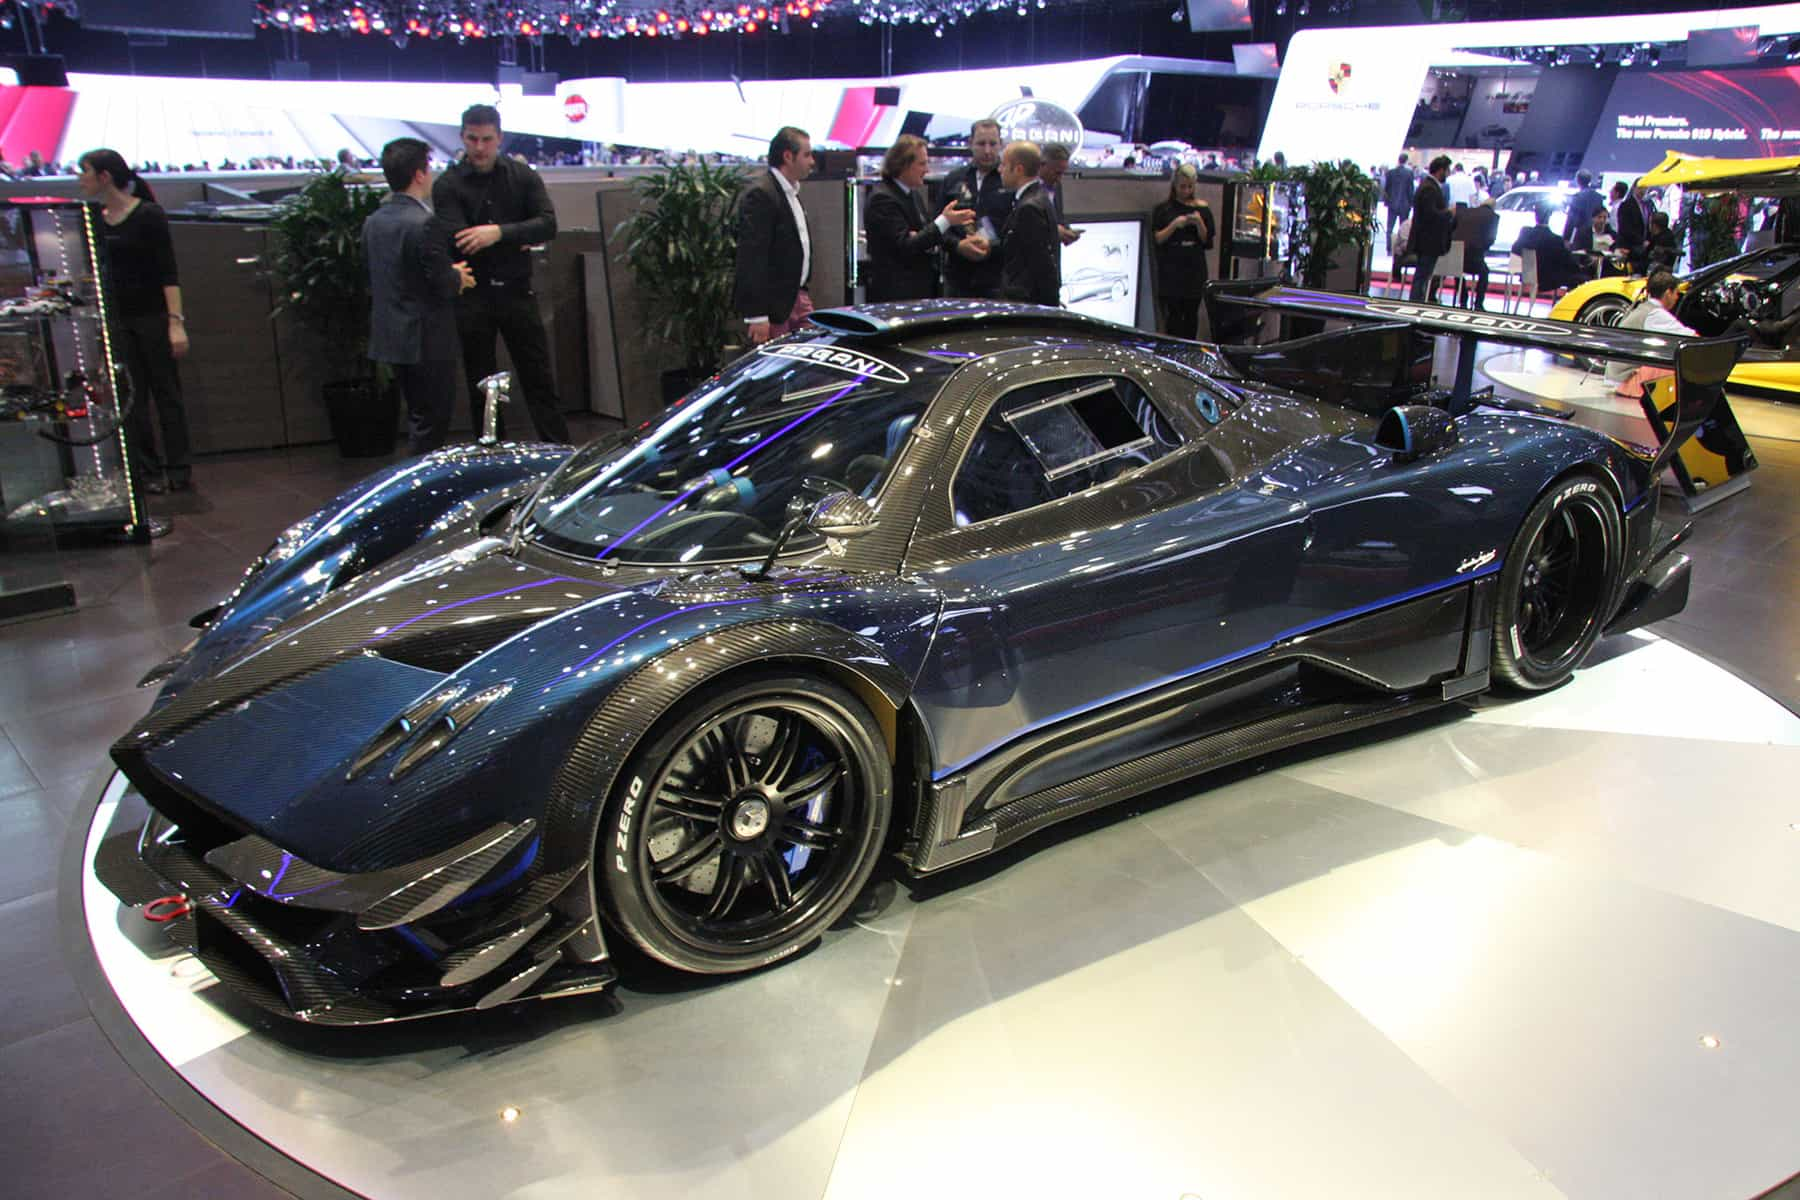 The Amazing Pagani Zonda Revolucion